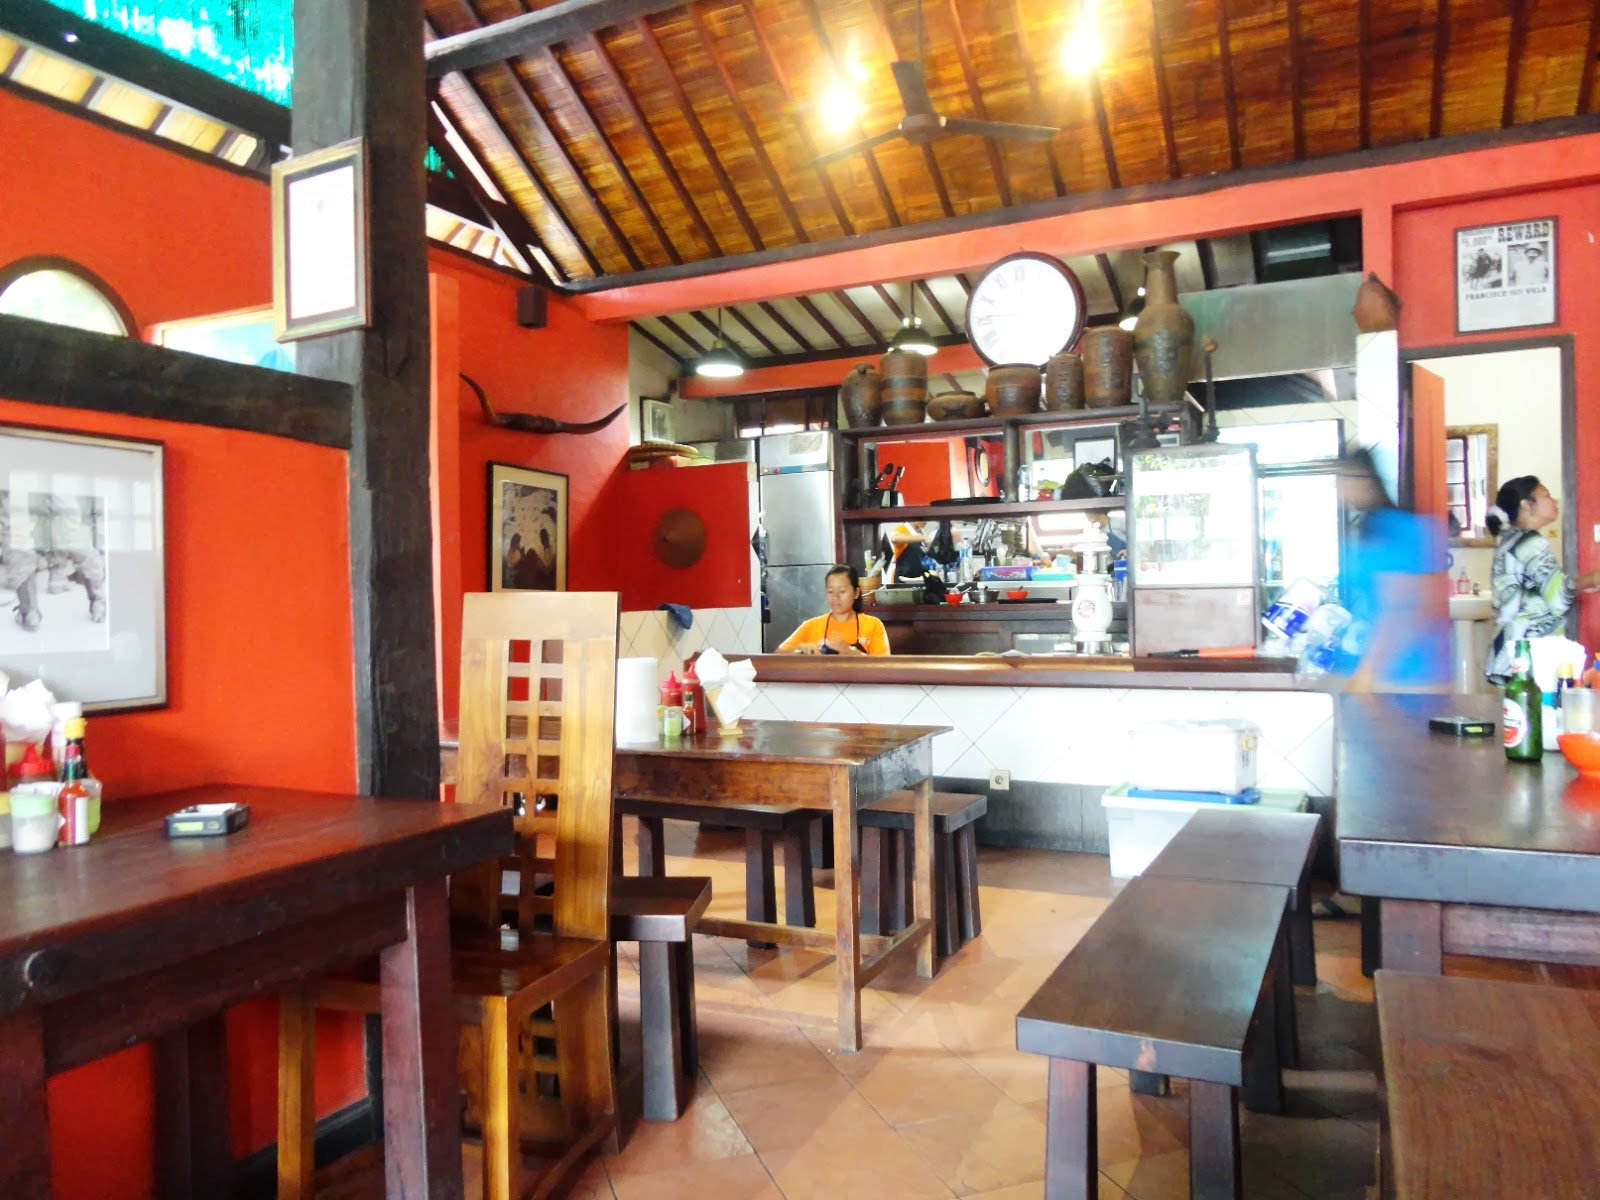 Bali Getaway Culinary Park Regis Hotel Review Pink And Undecided Voucher Kuta They Used To Serve Mexican Food Like Tacos I Still Remember D Whos A Half Vegetarian She Eats Seafood Had Fish Taco Or Something That Back Then